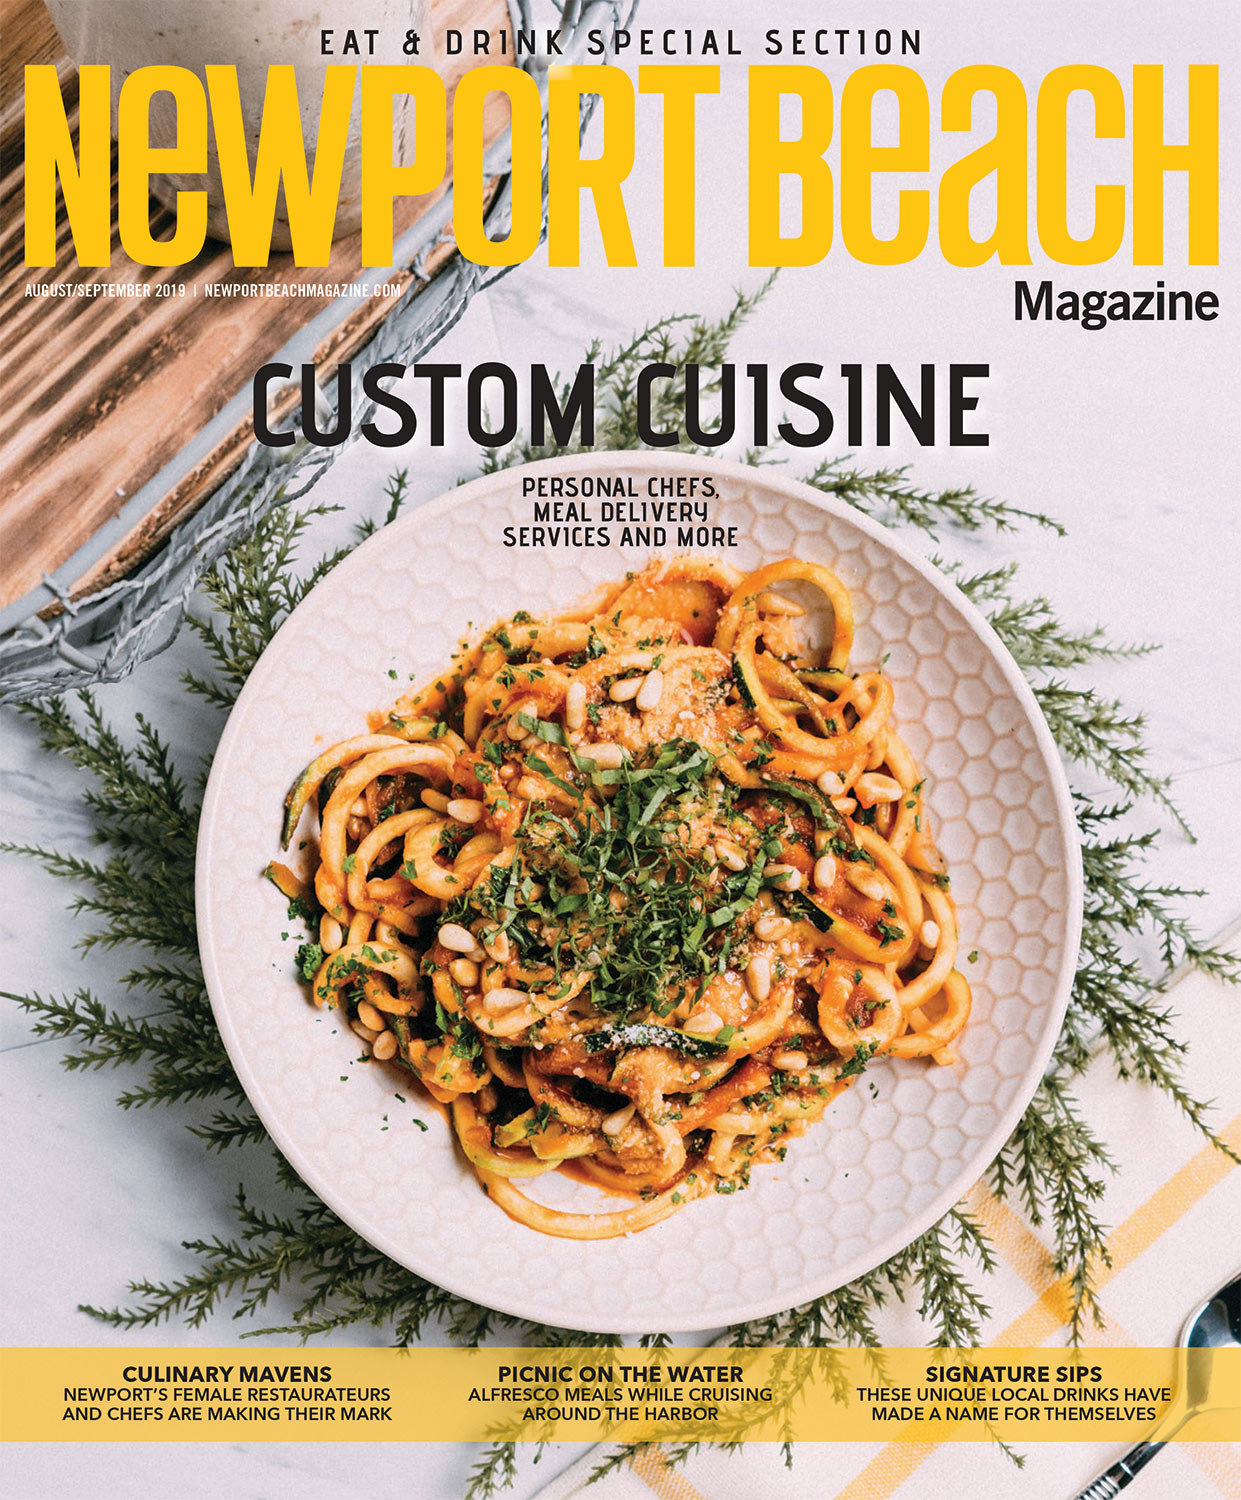 Taylor-Made-Cuisine-in-Newport-Beach-Magazine.jpg